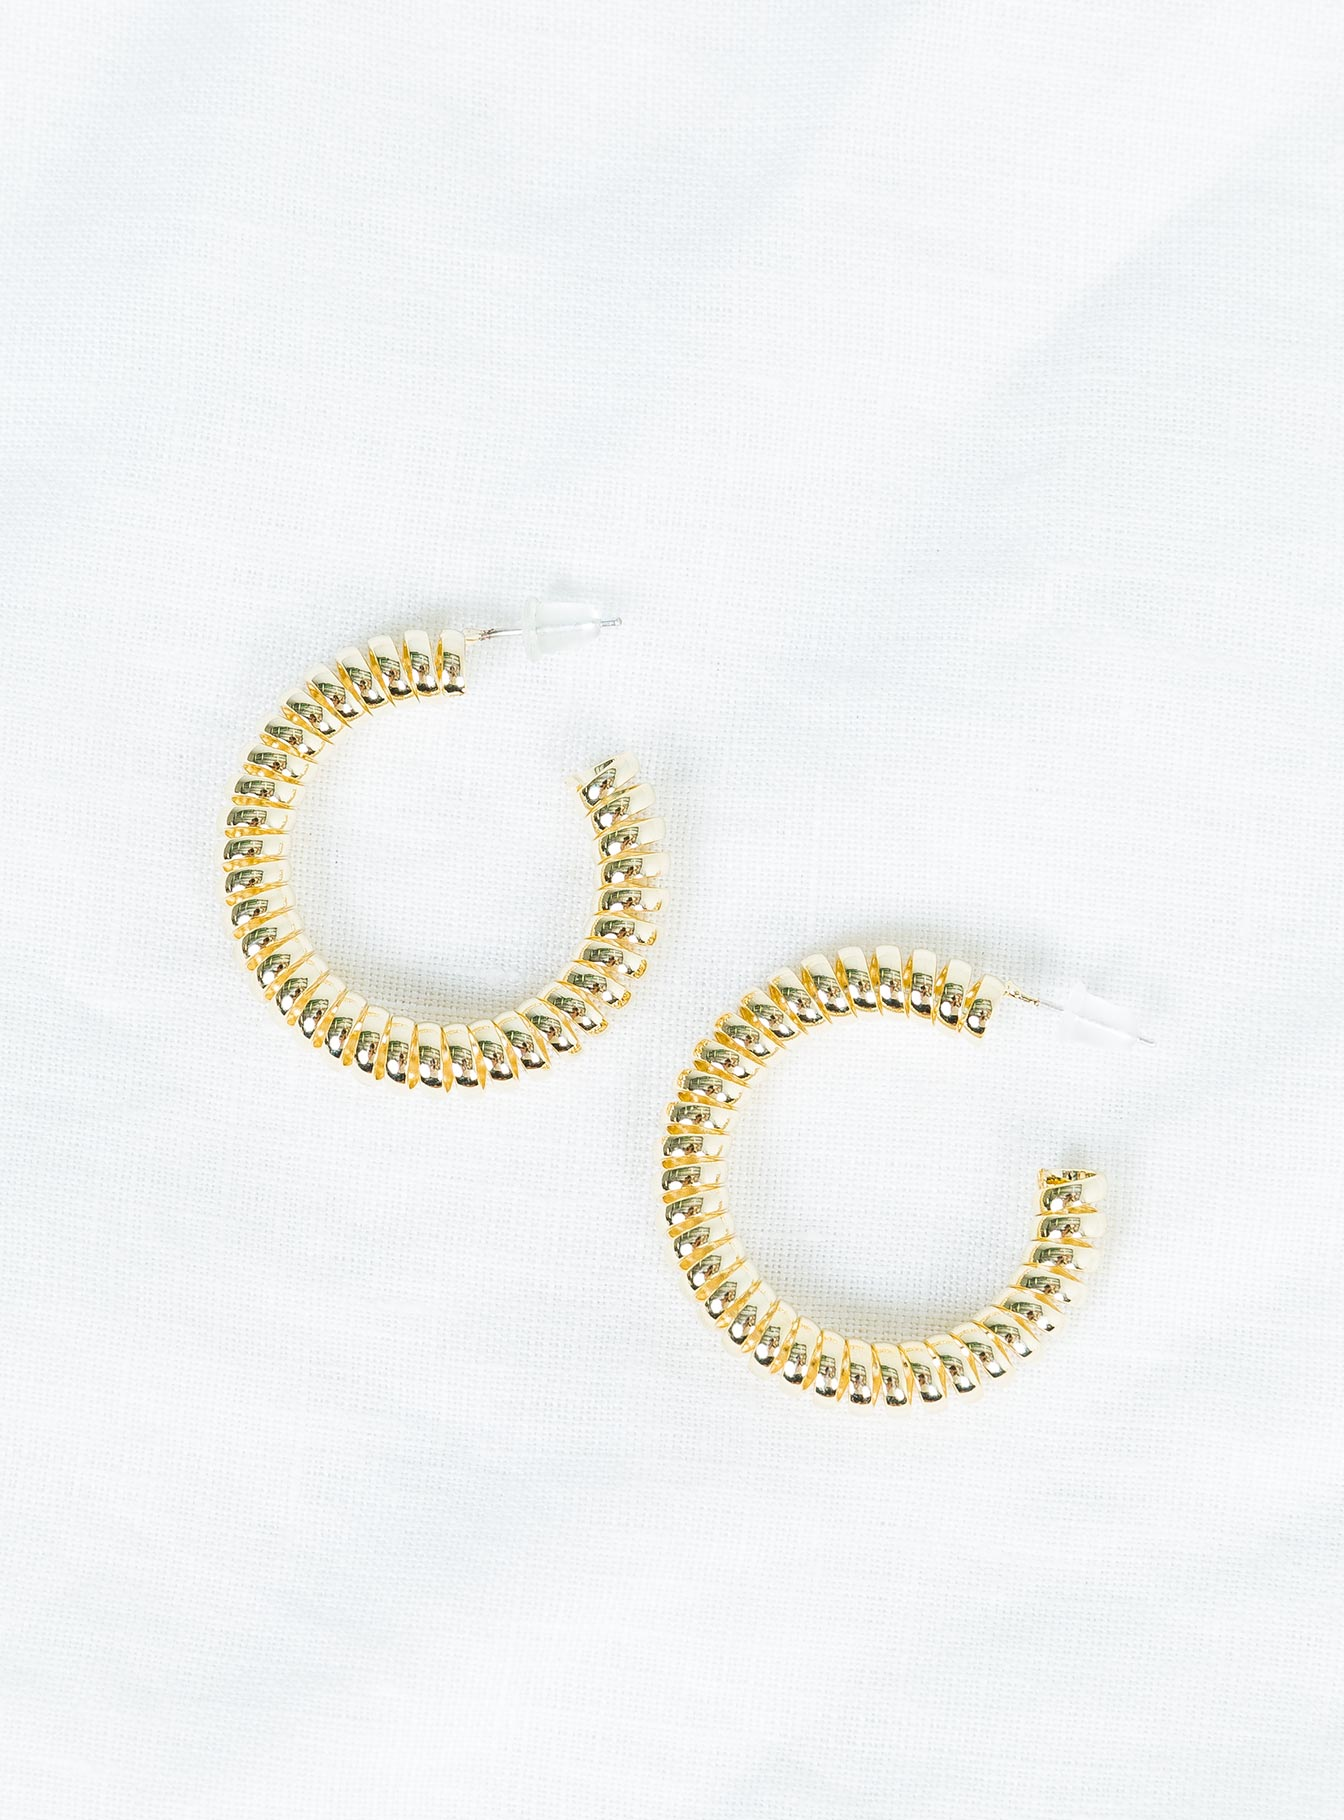 The Vortex Hoop Earrings